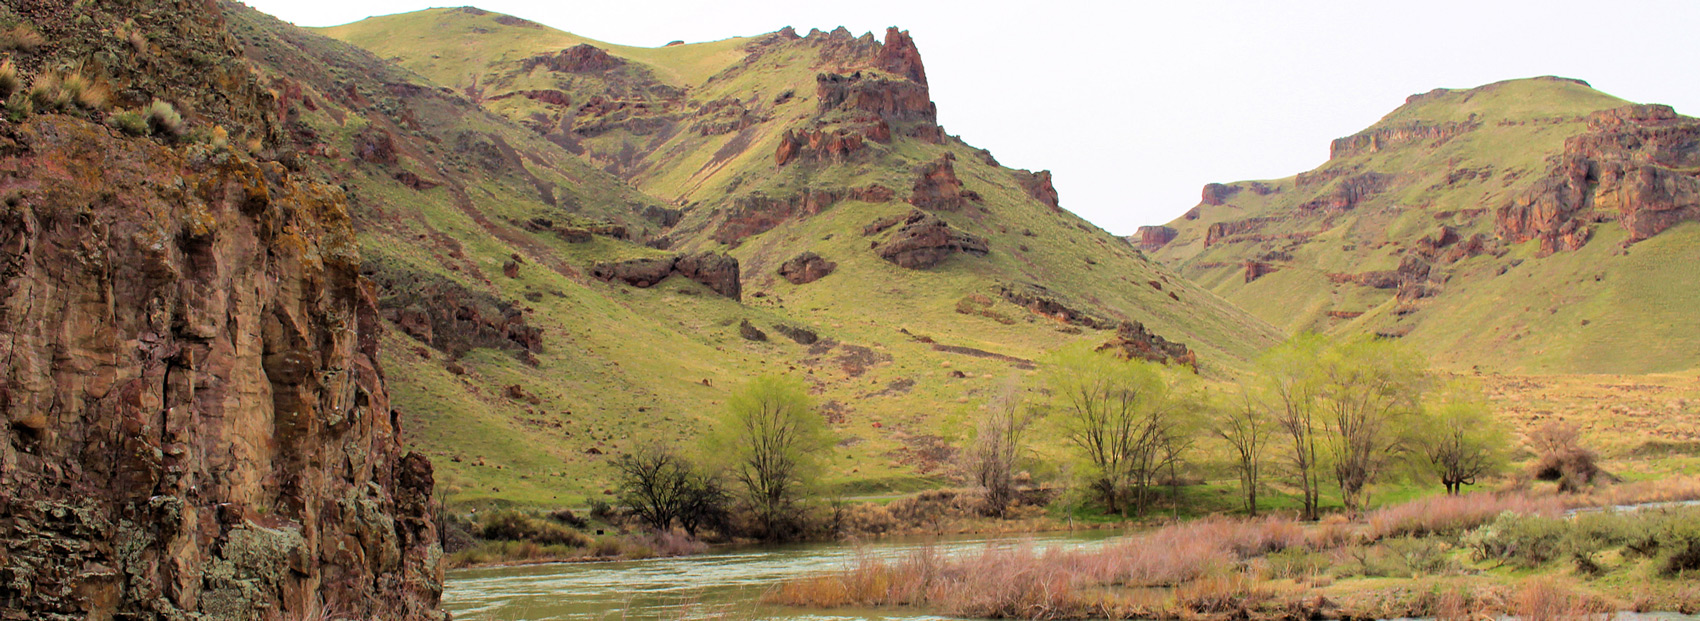 On the bank of the Owyhee River